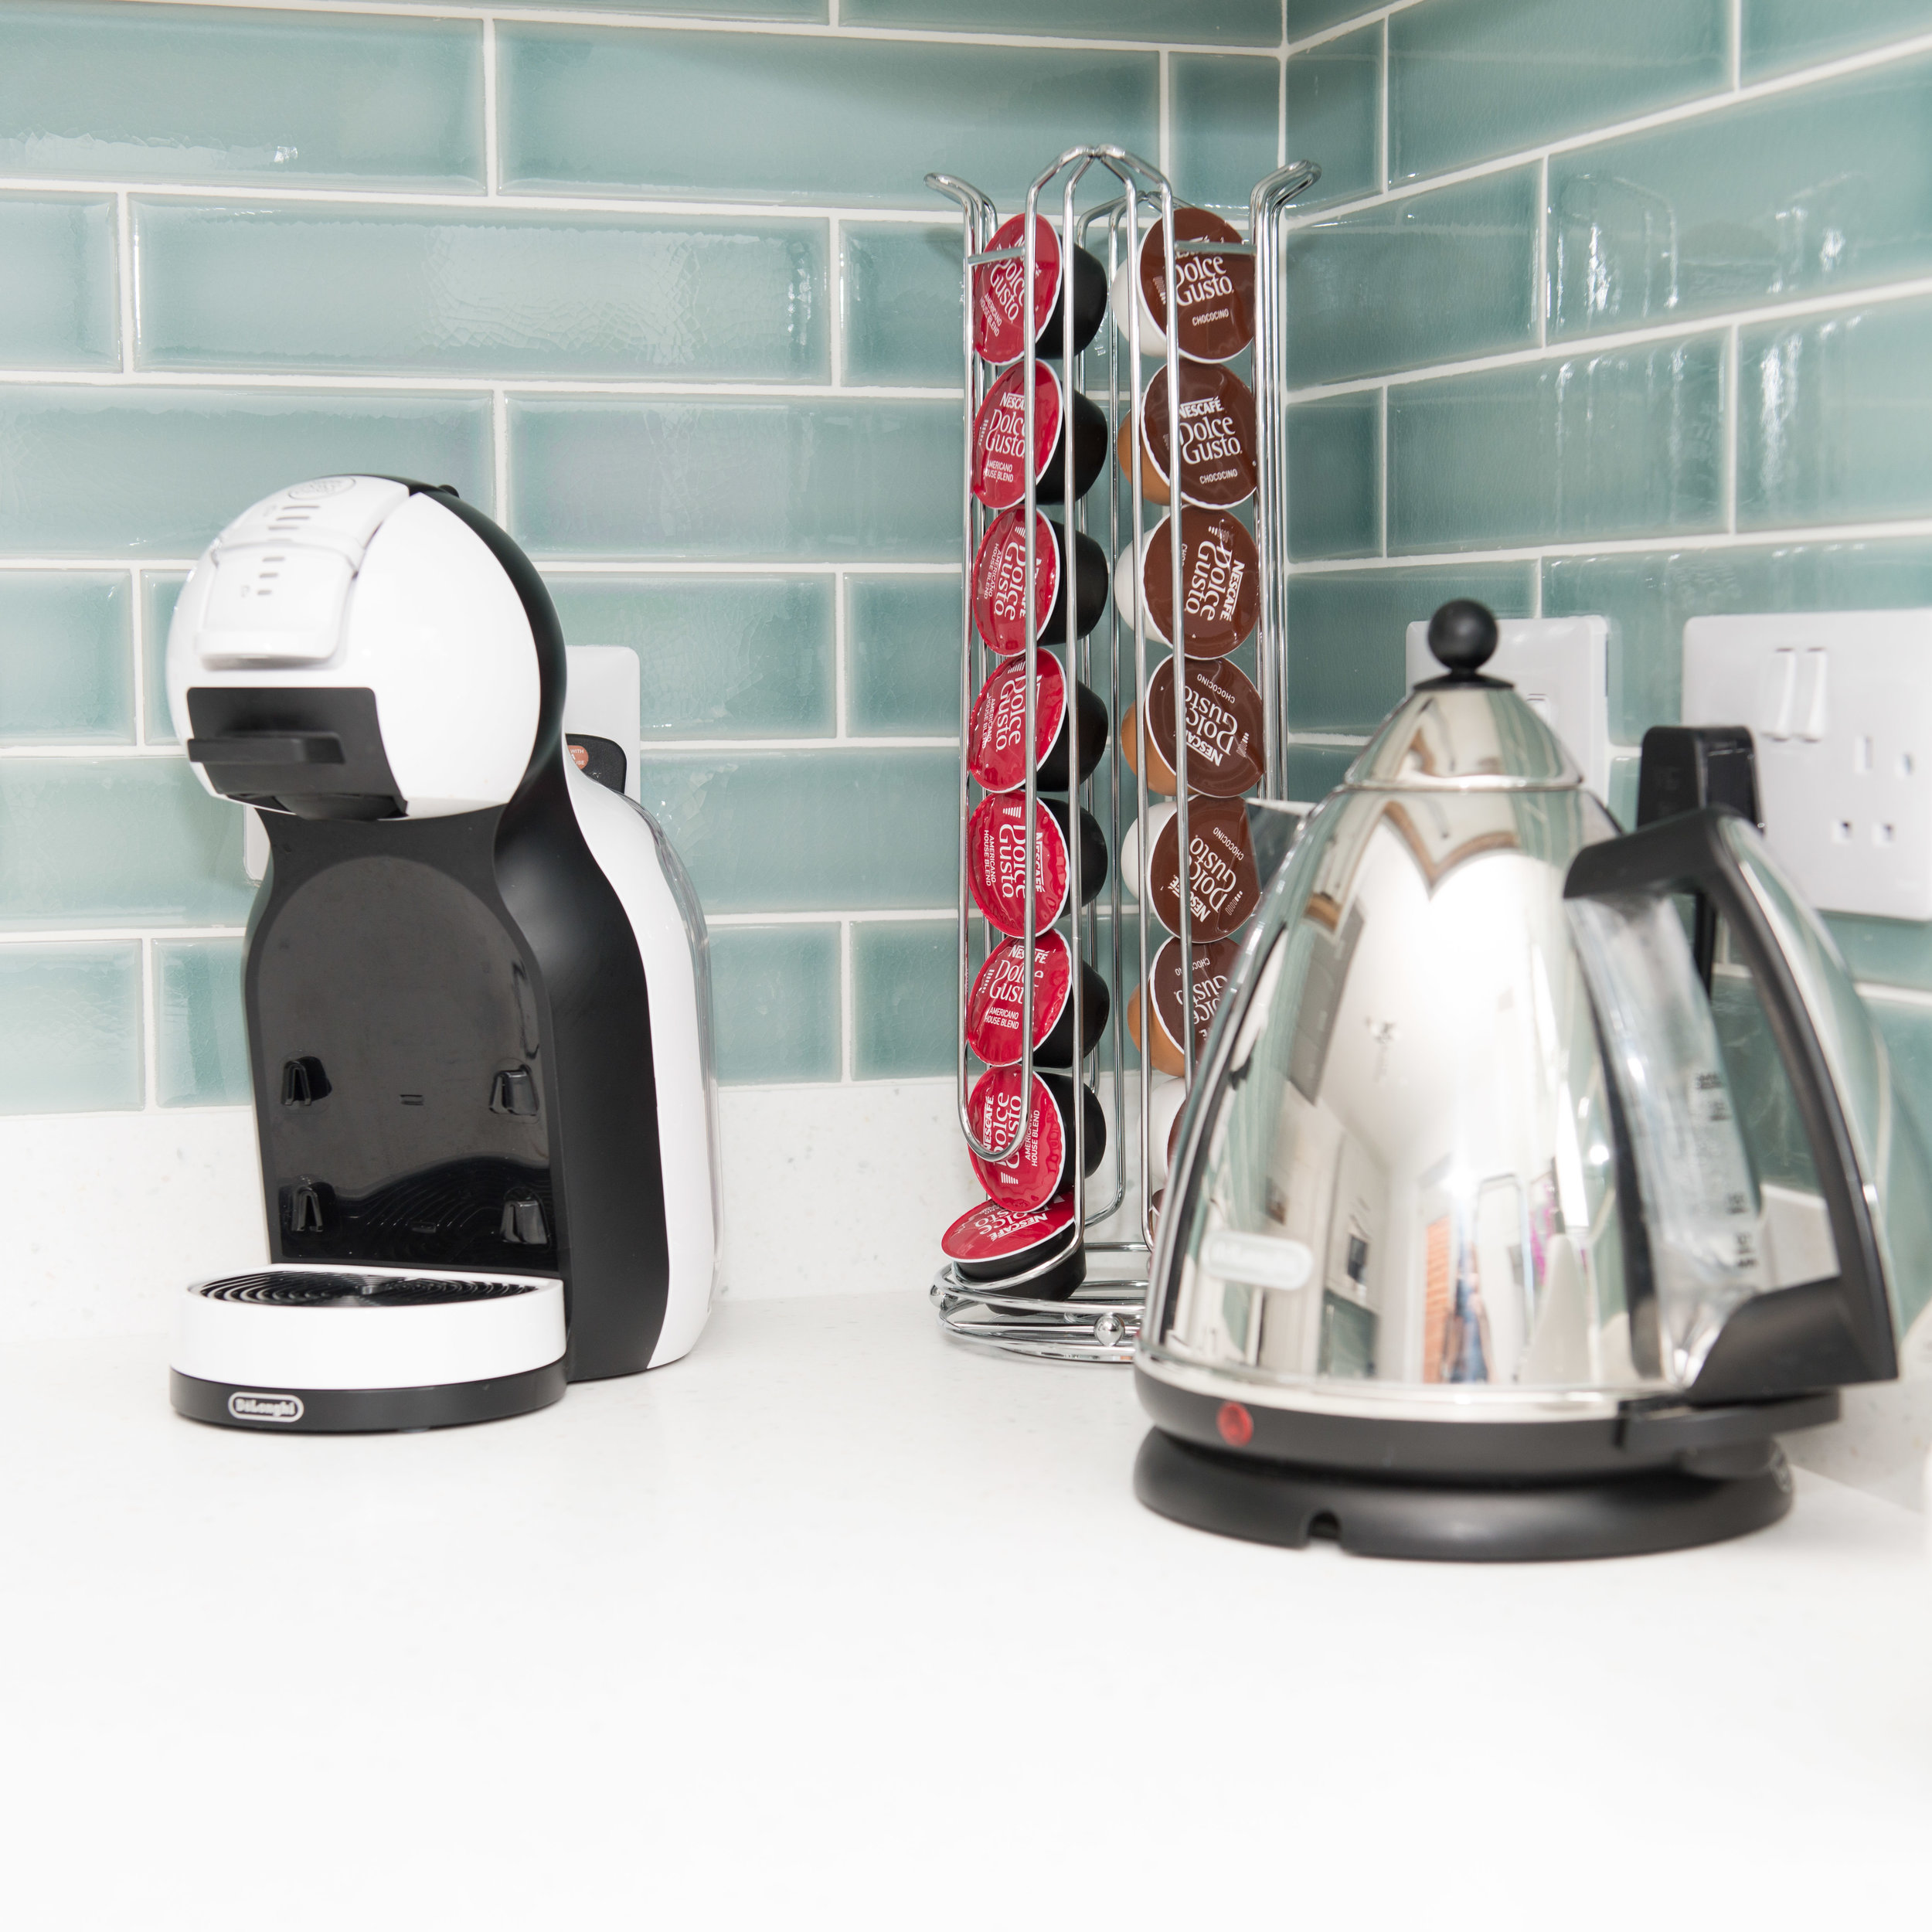 chrome kettle and coffee machine with duck egg tiles behind | Product Photographer Aylesbury Buckinghamshire and Thame Oxfordshire